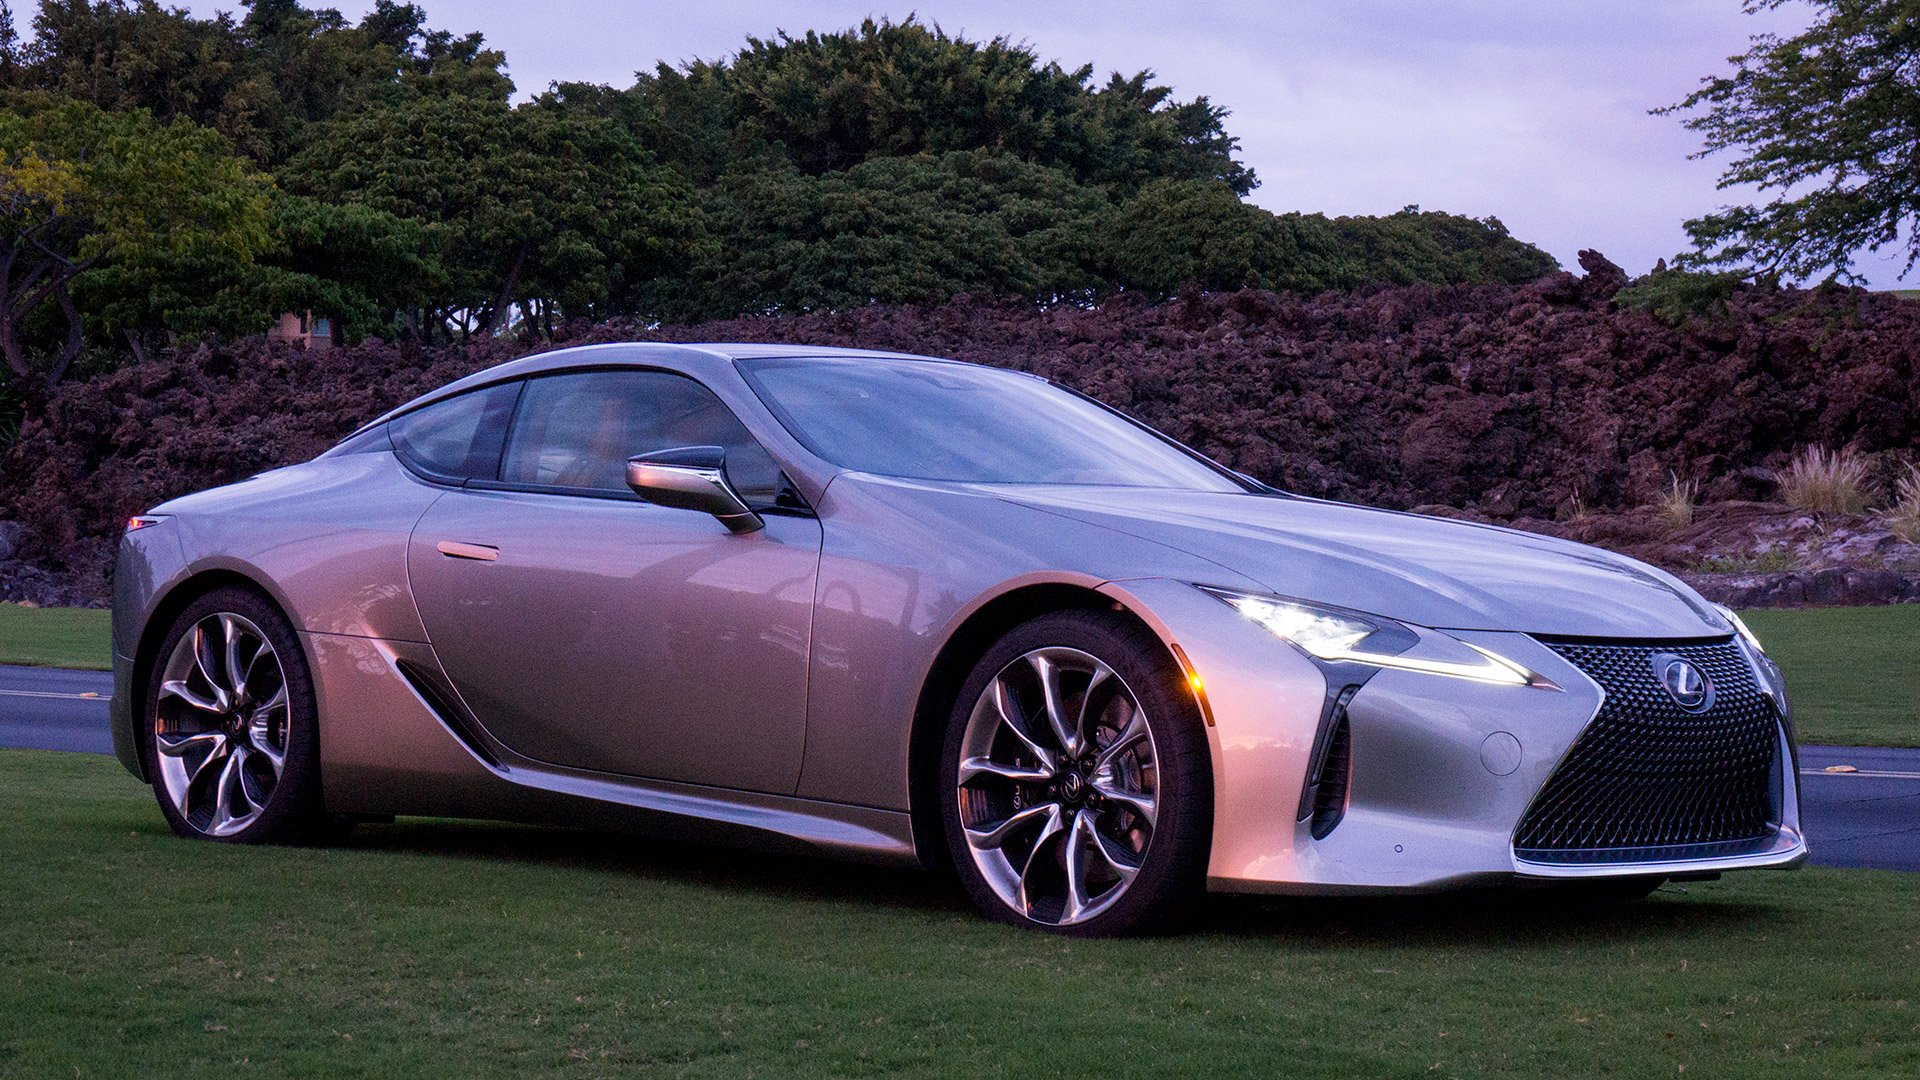 2018 Lexus LC 500: Lexus Moves Into the Fast Lane